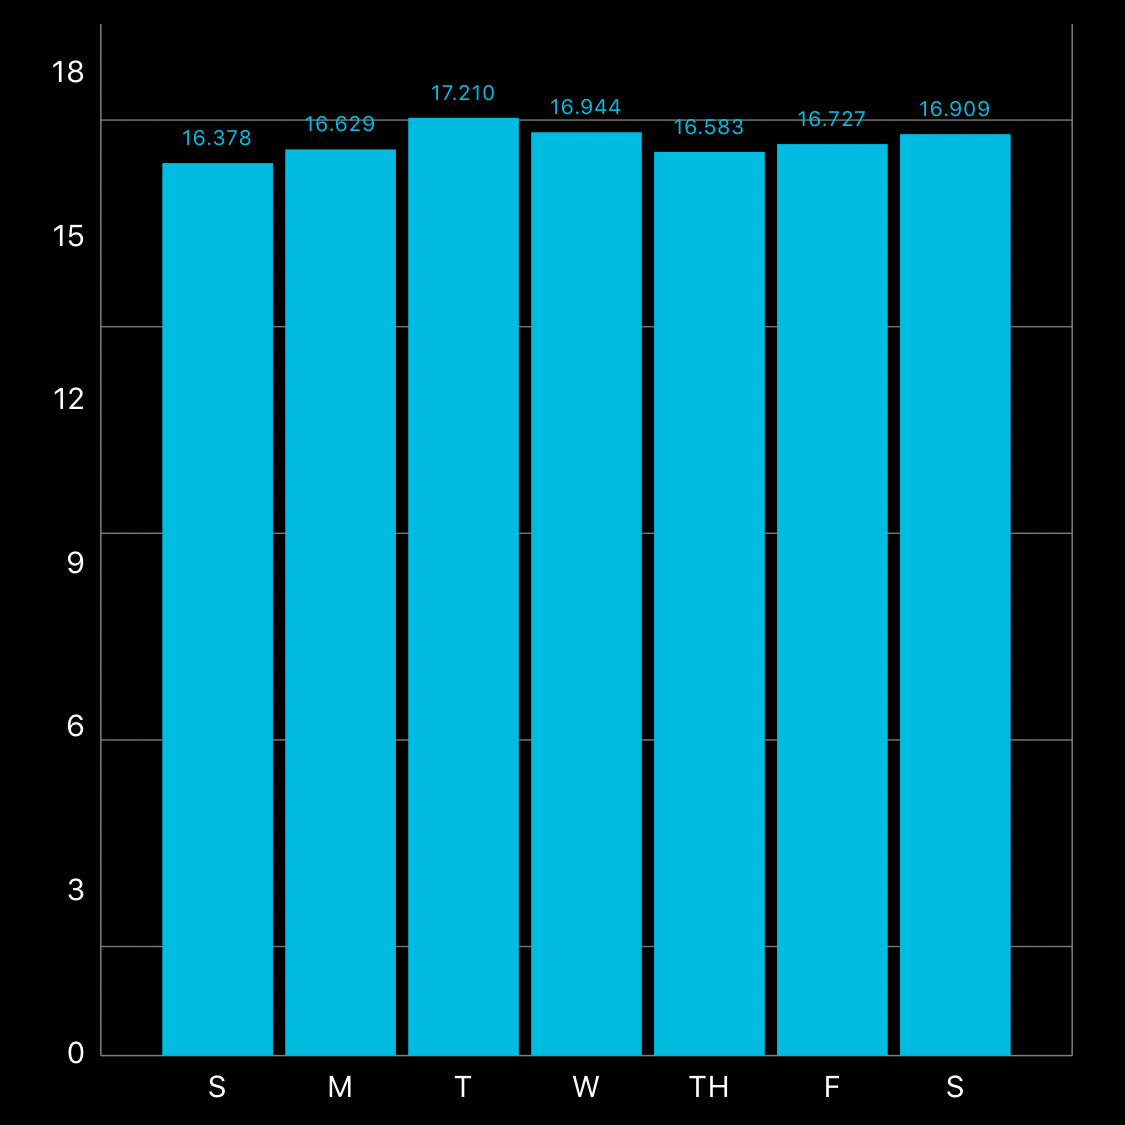 Stand hours chart data average throughout the week